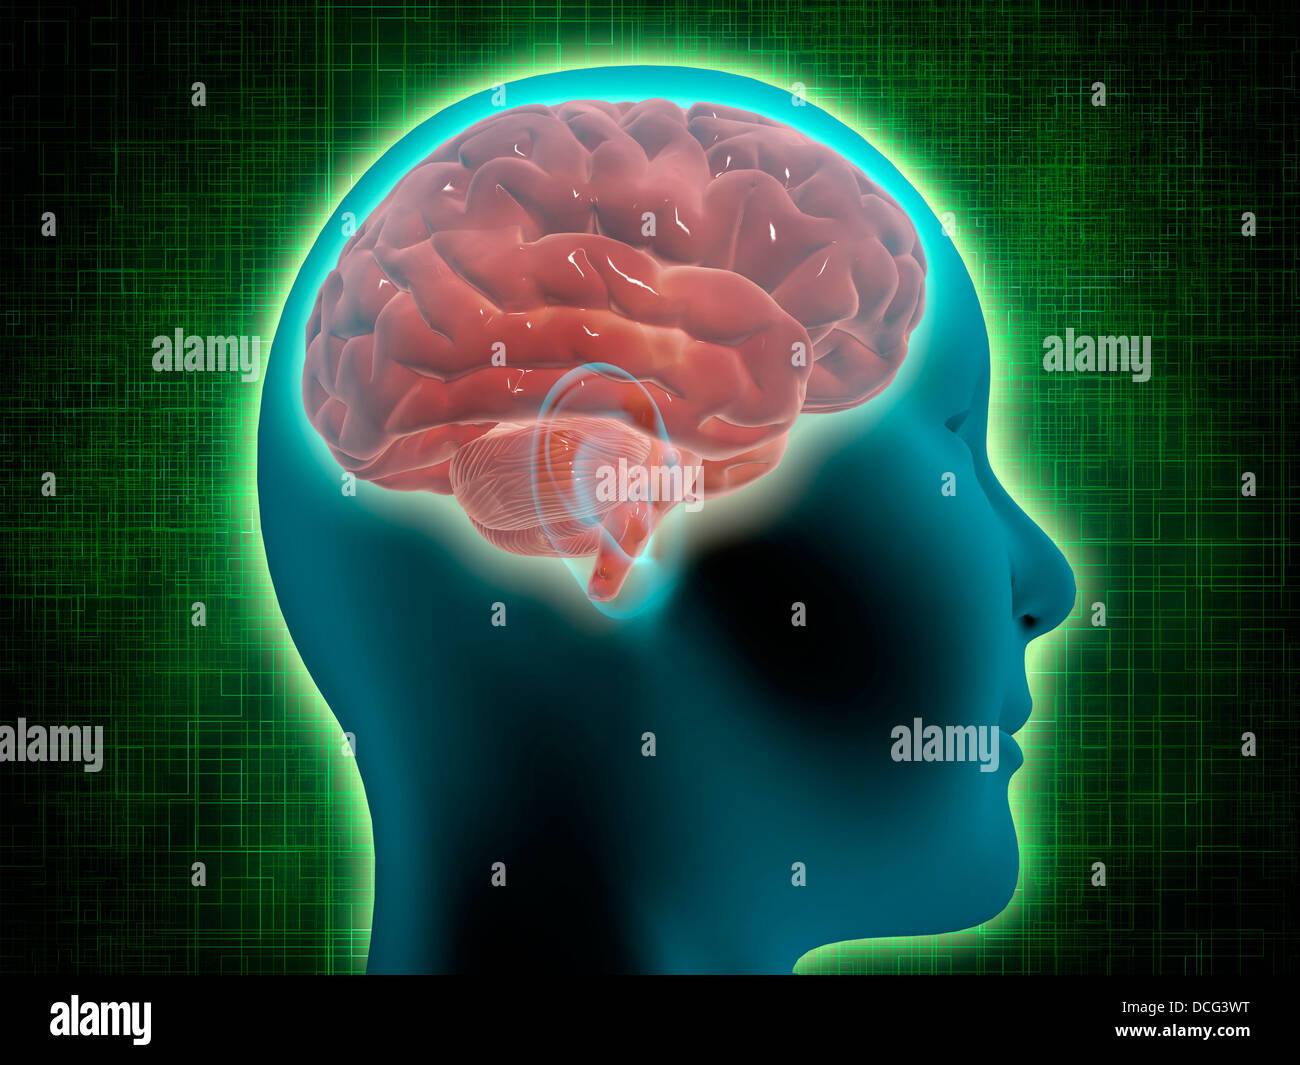 Conceptual image of female body with brain, side view. - Stock Image